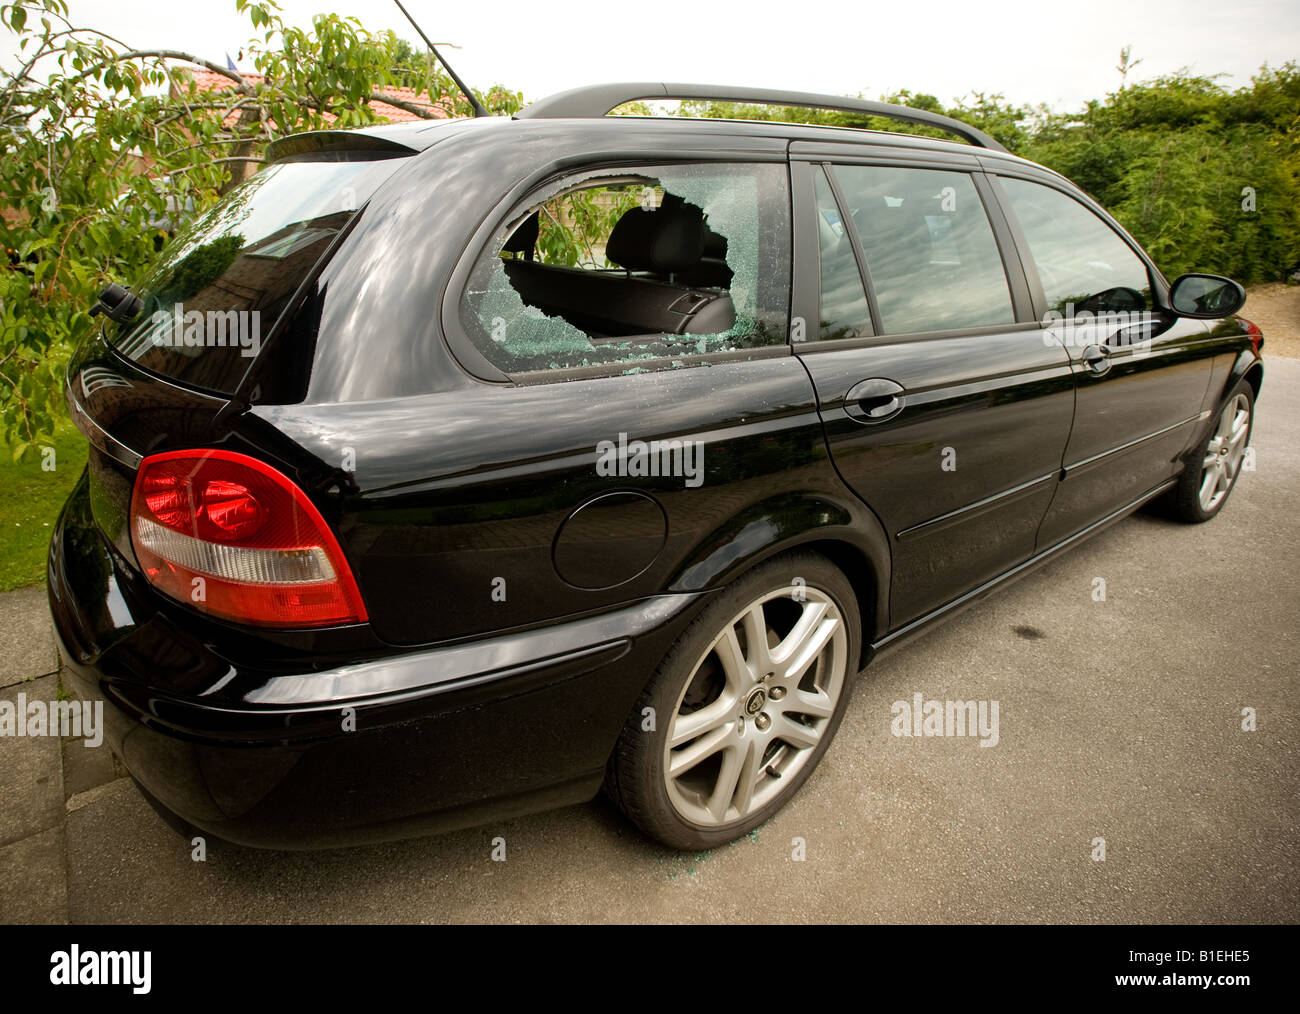 Smashed rear car window - Stock Image